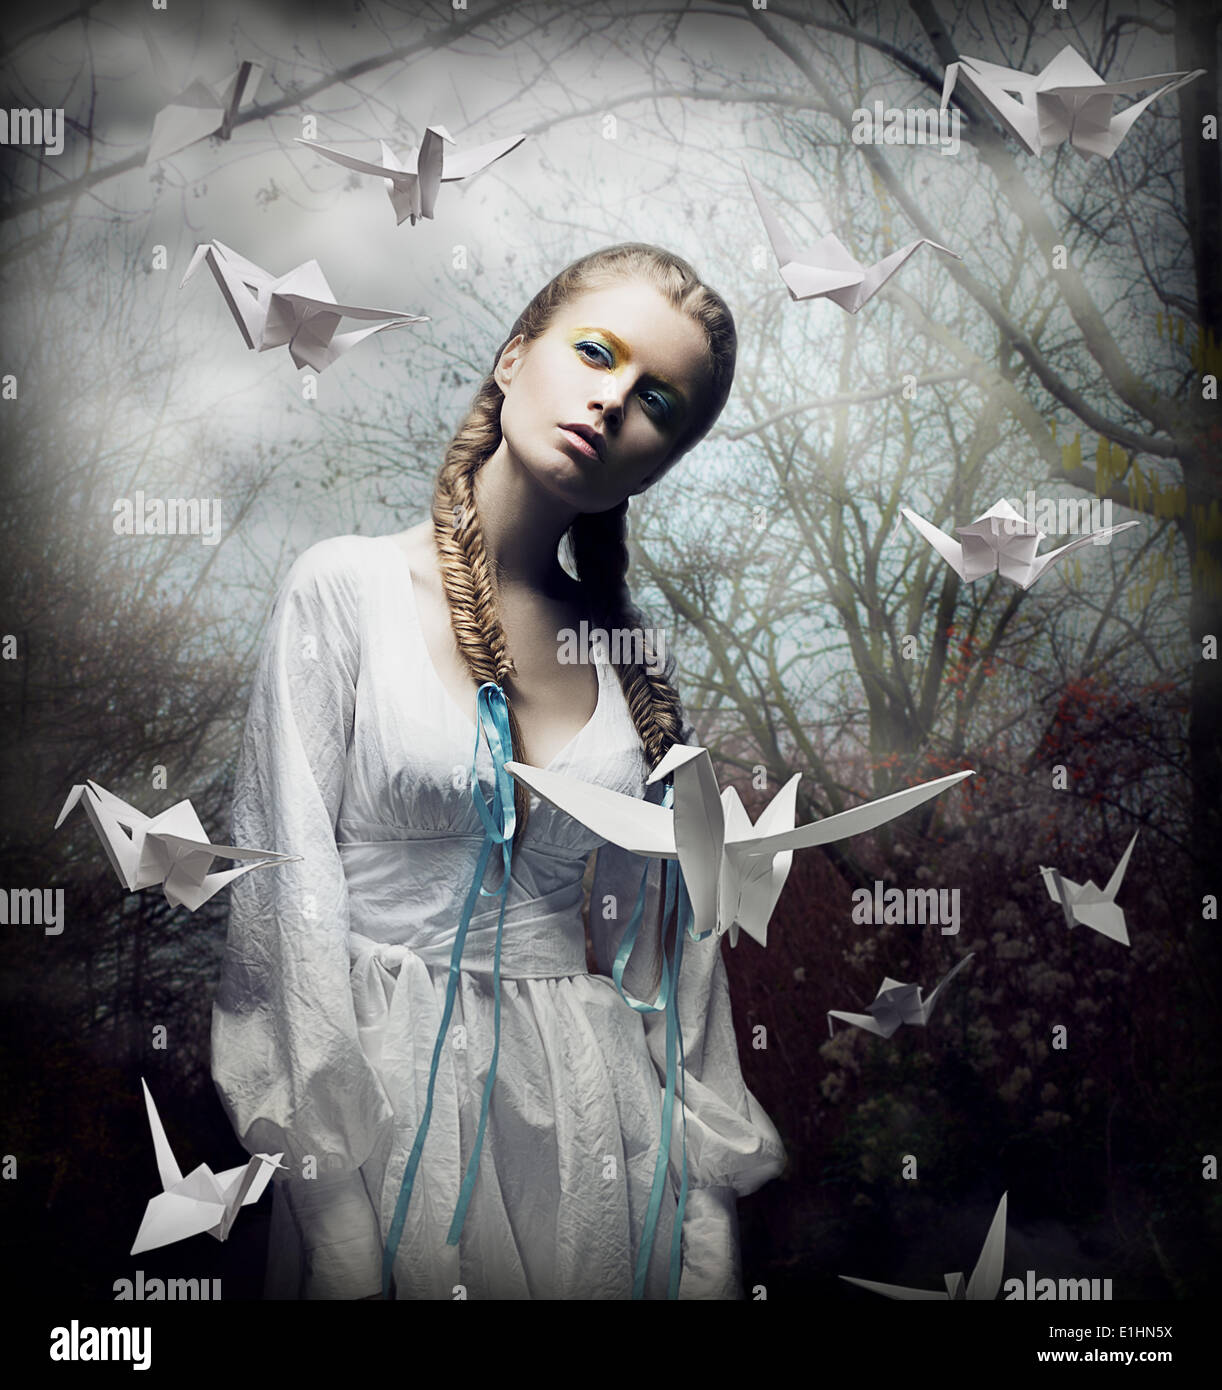 Imagination. Romantic Blonde with Hovering Origami Birds in Spooky Forest. Magic - Stock Image